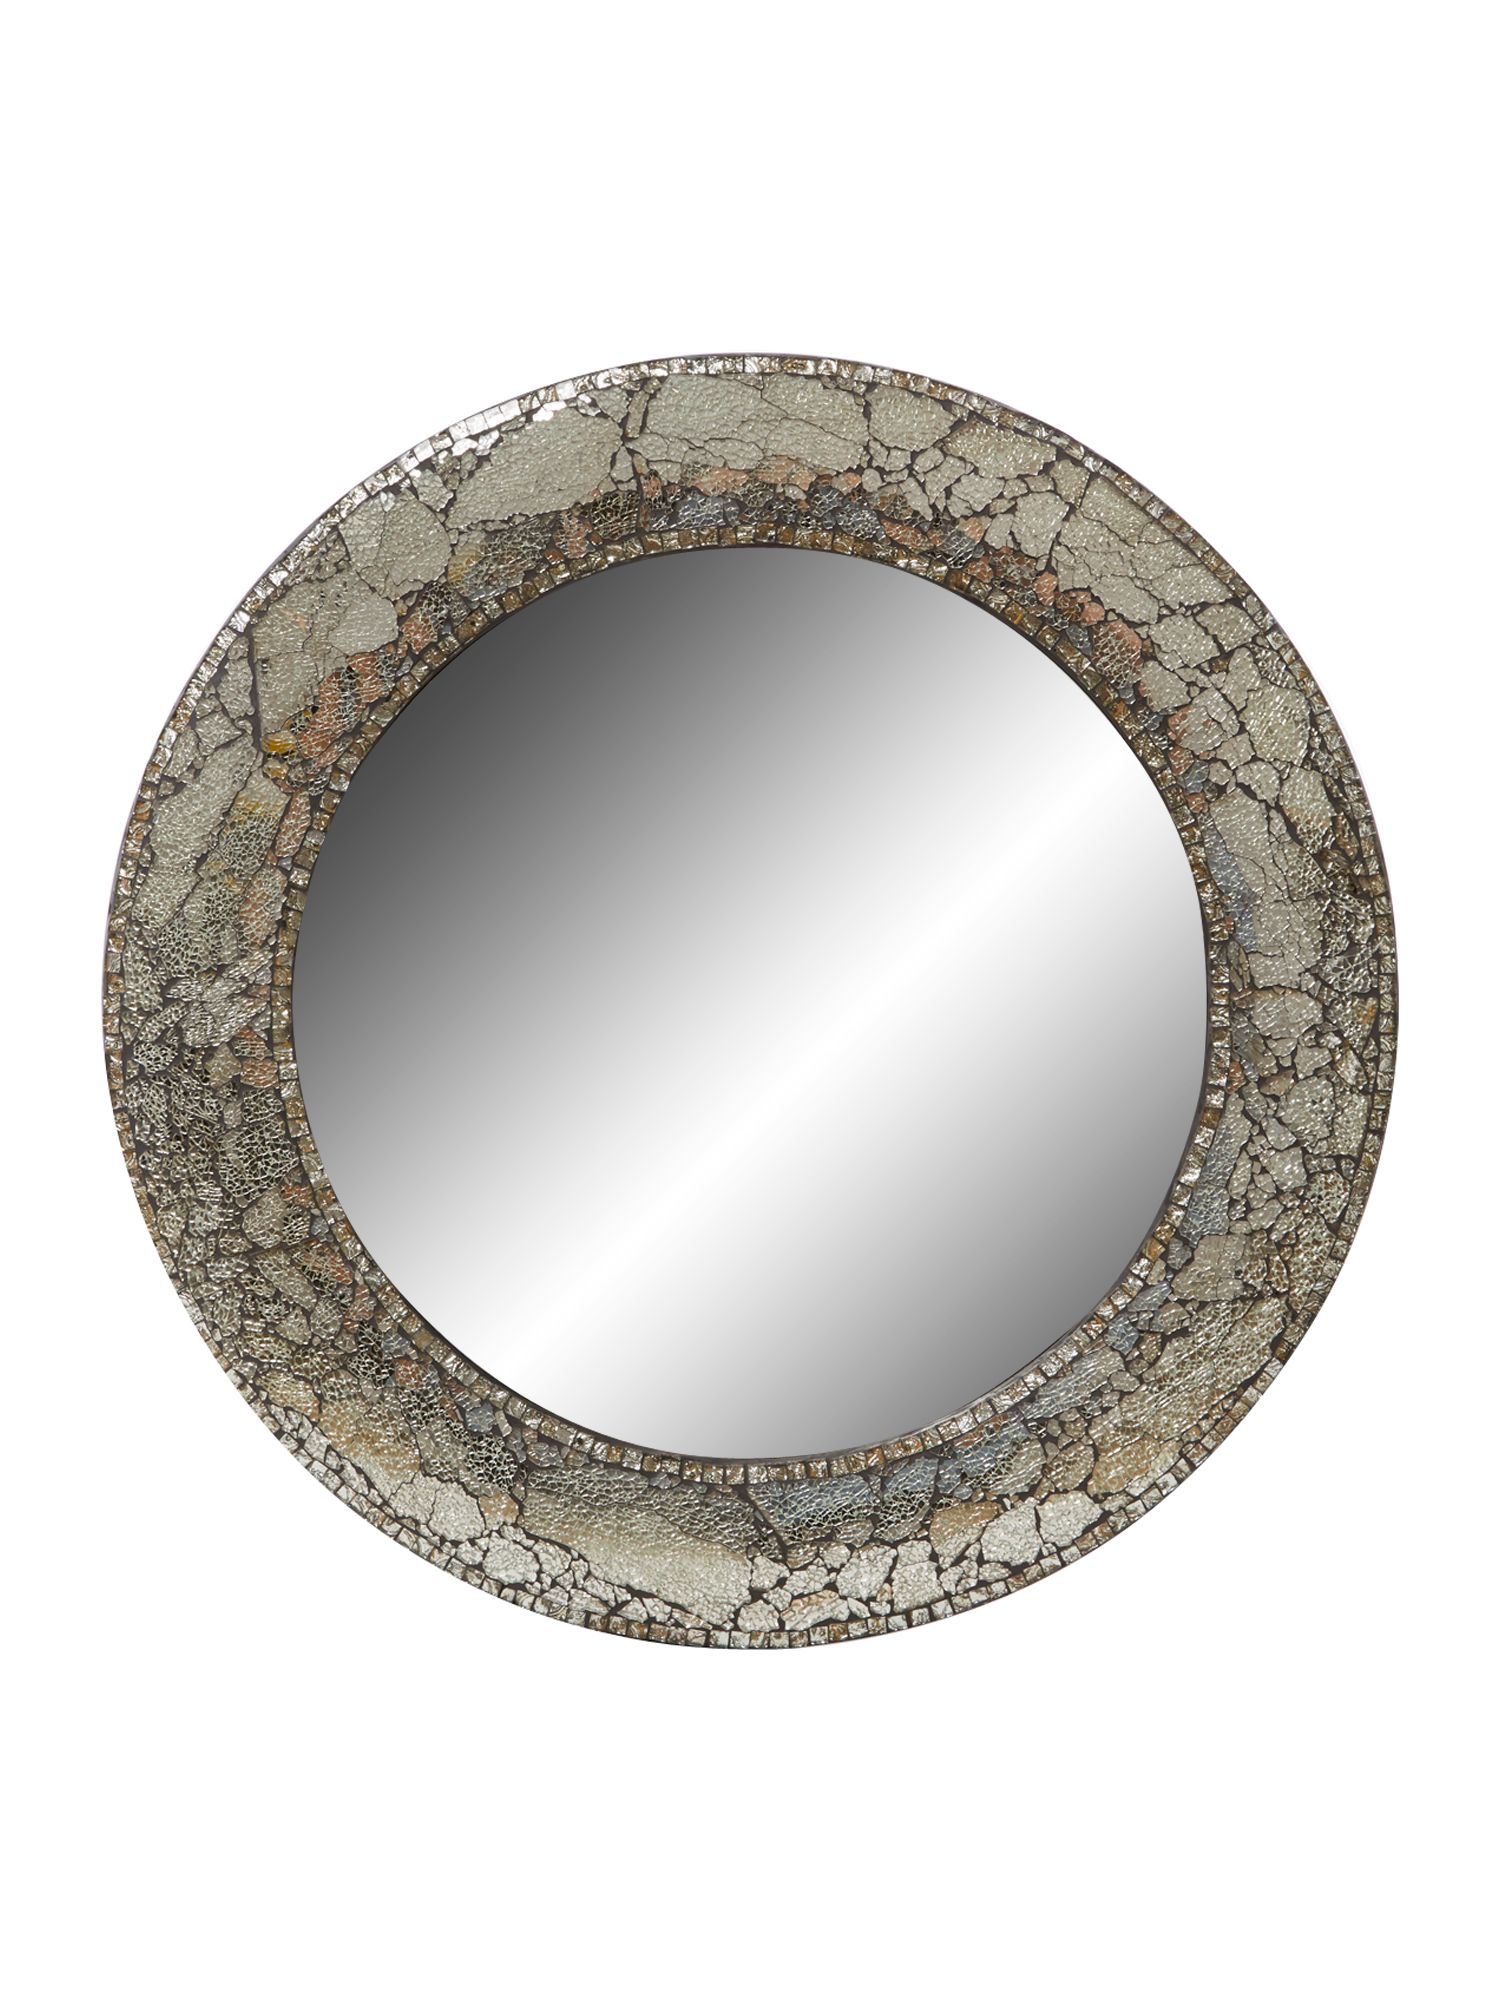 Black round mosaic mirror